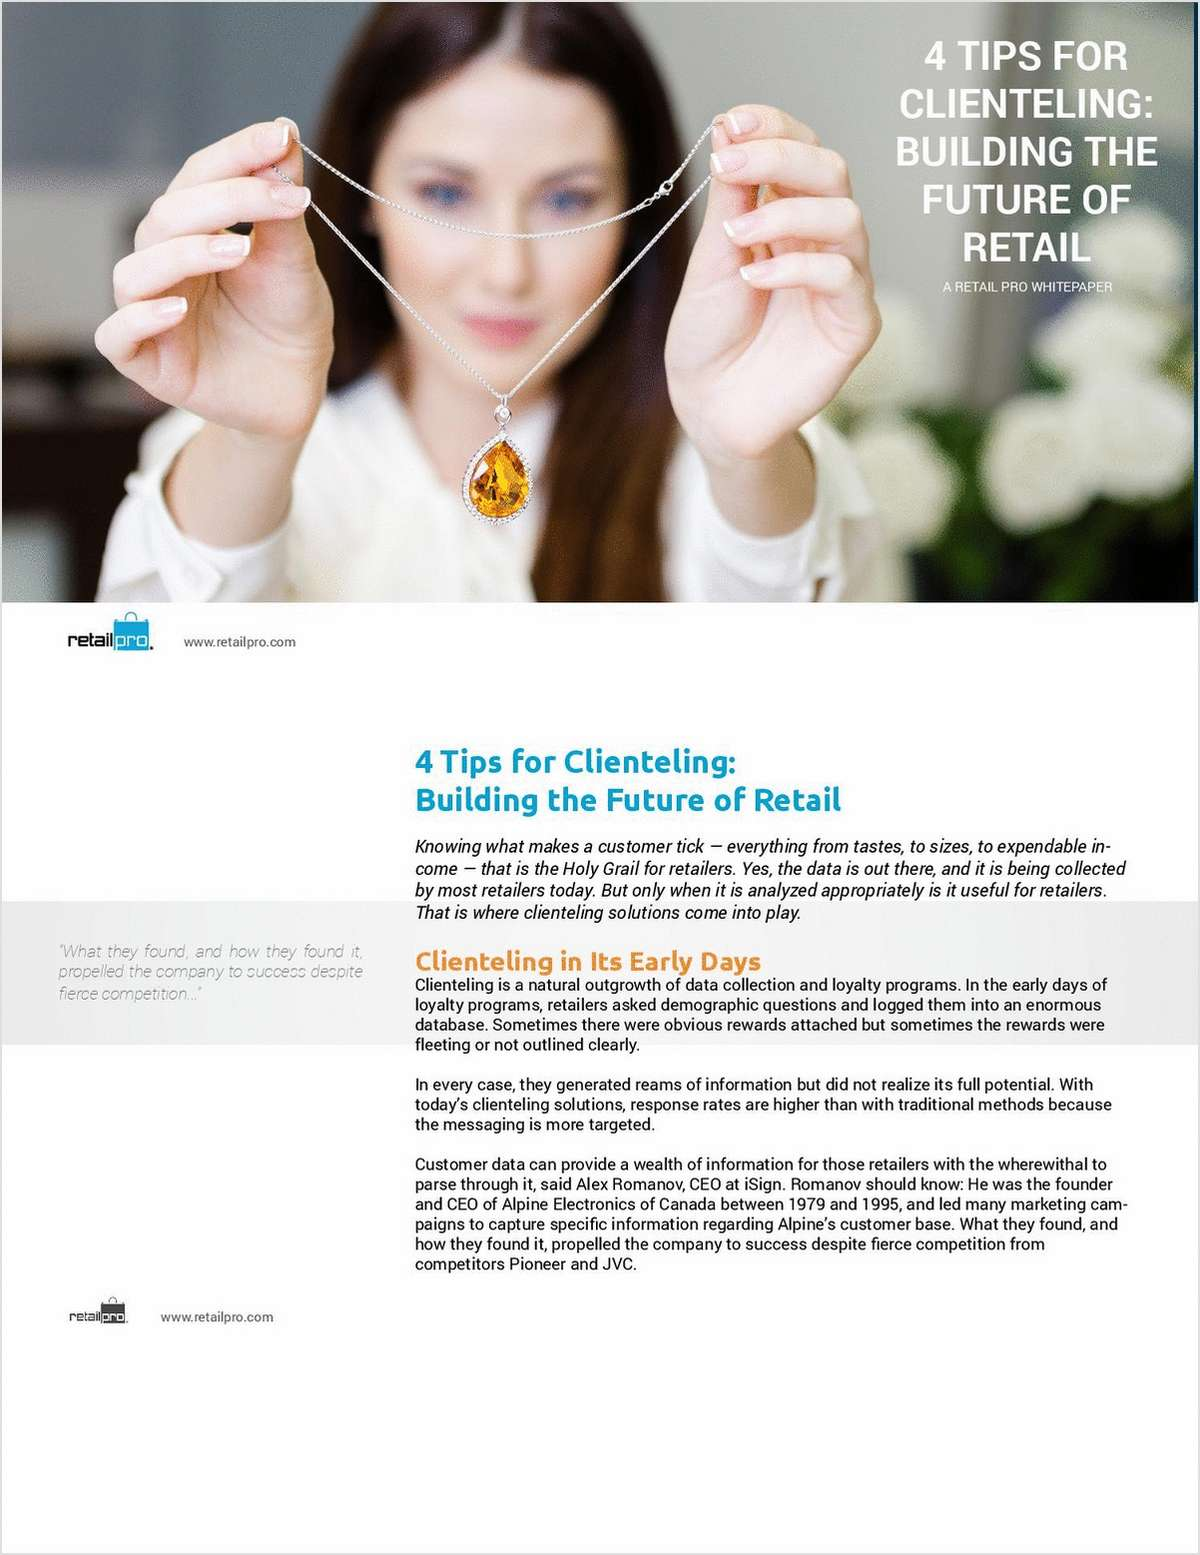 4 Tips For Clienteling: Building The Future Of Retail